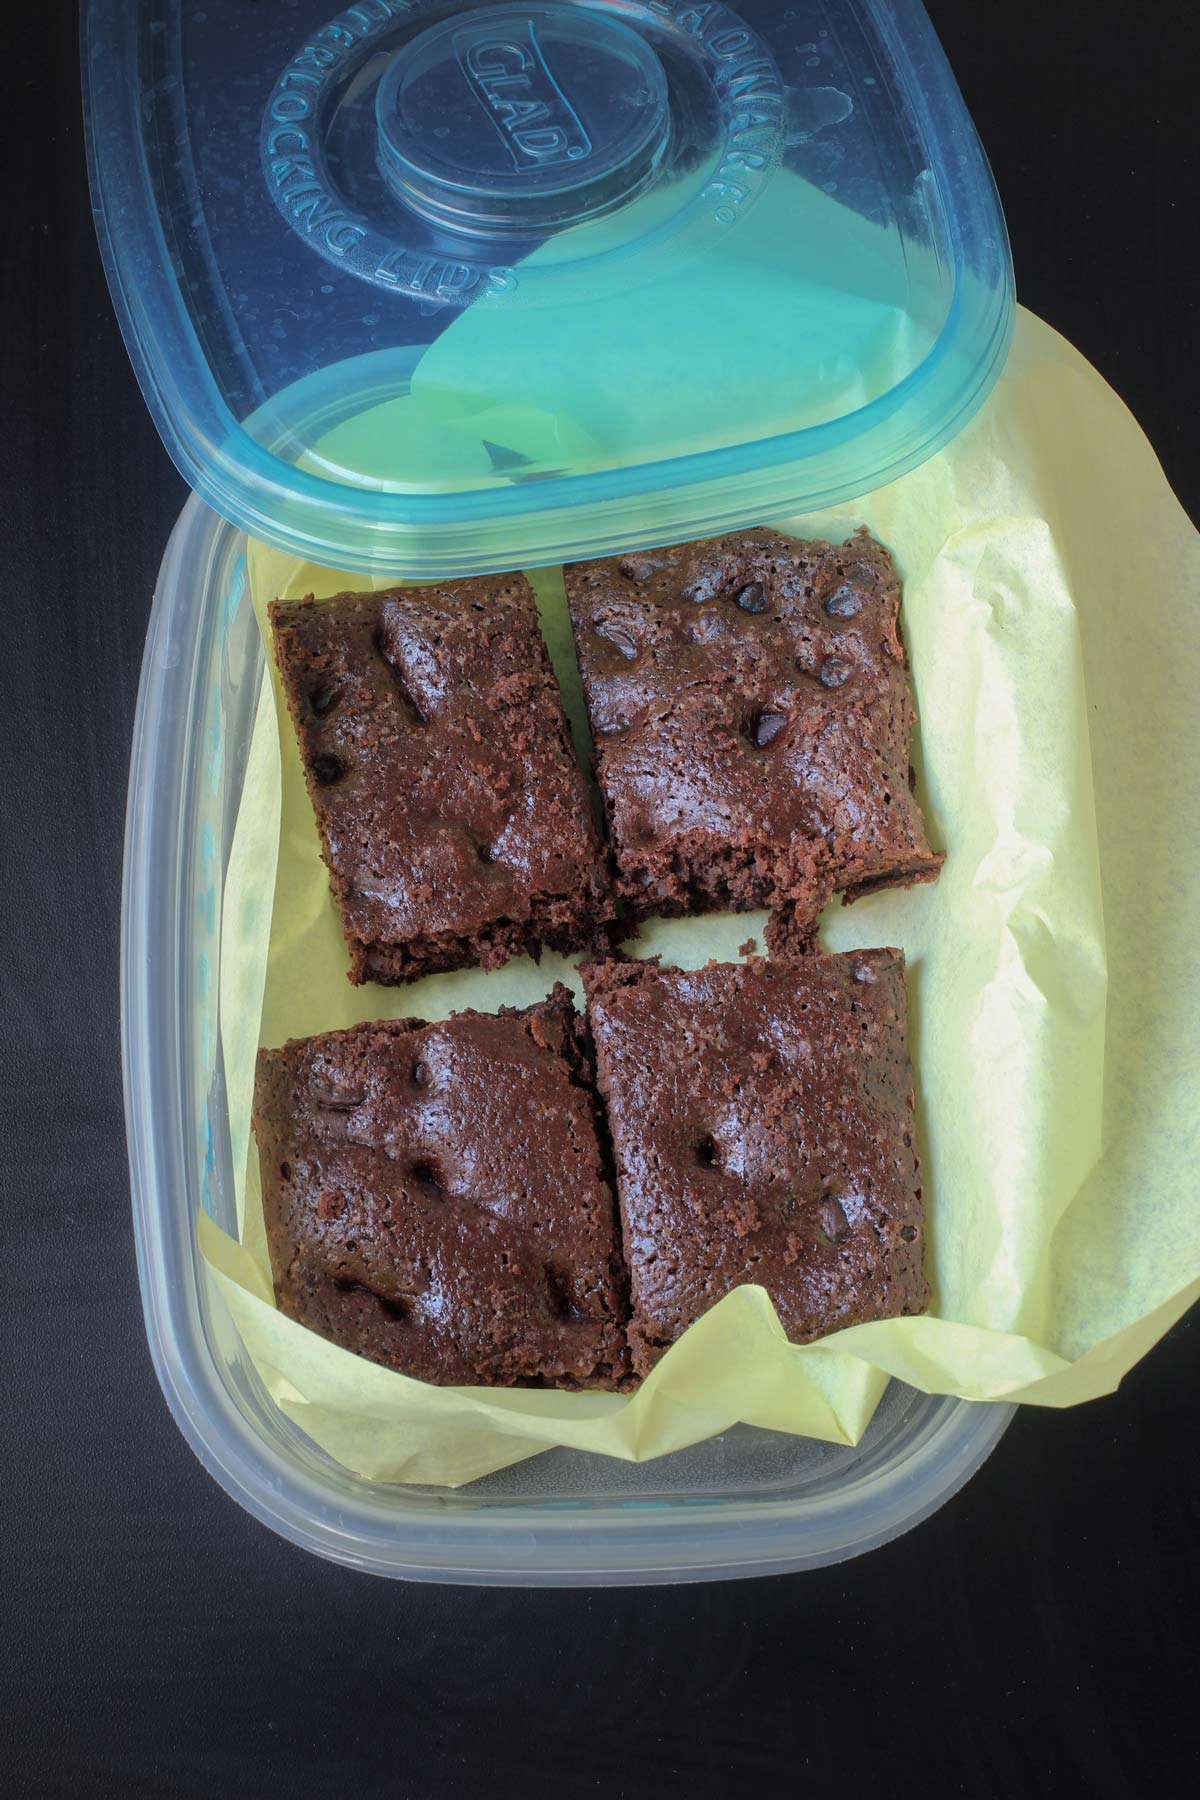 brownies sliced and arranged in a plastic container with a lid lined with deli wrap.